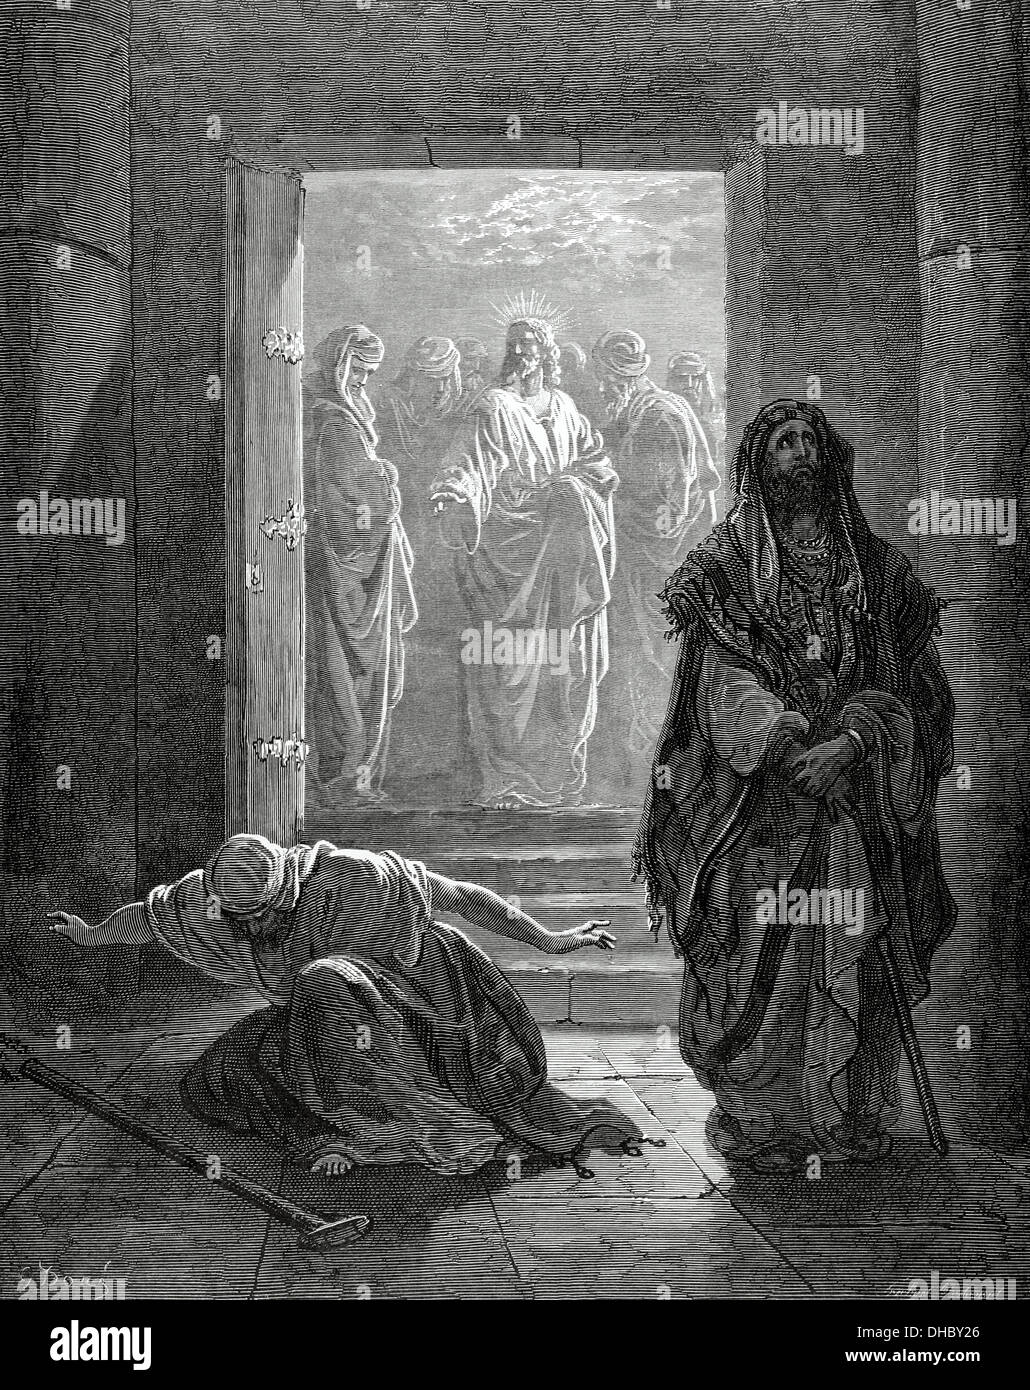 New Testament. Gospel of Luke. Chapter XVIII. Parable of the Pharisee and the Publican. Engraving. - Stock Image